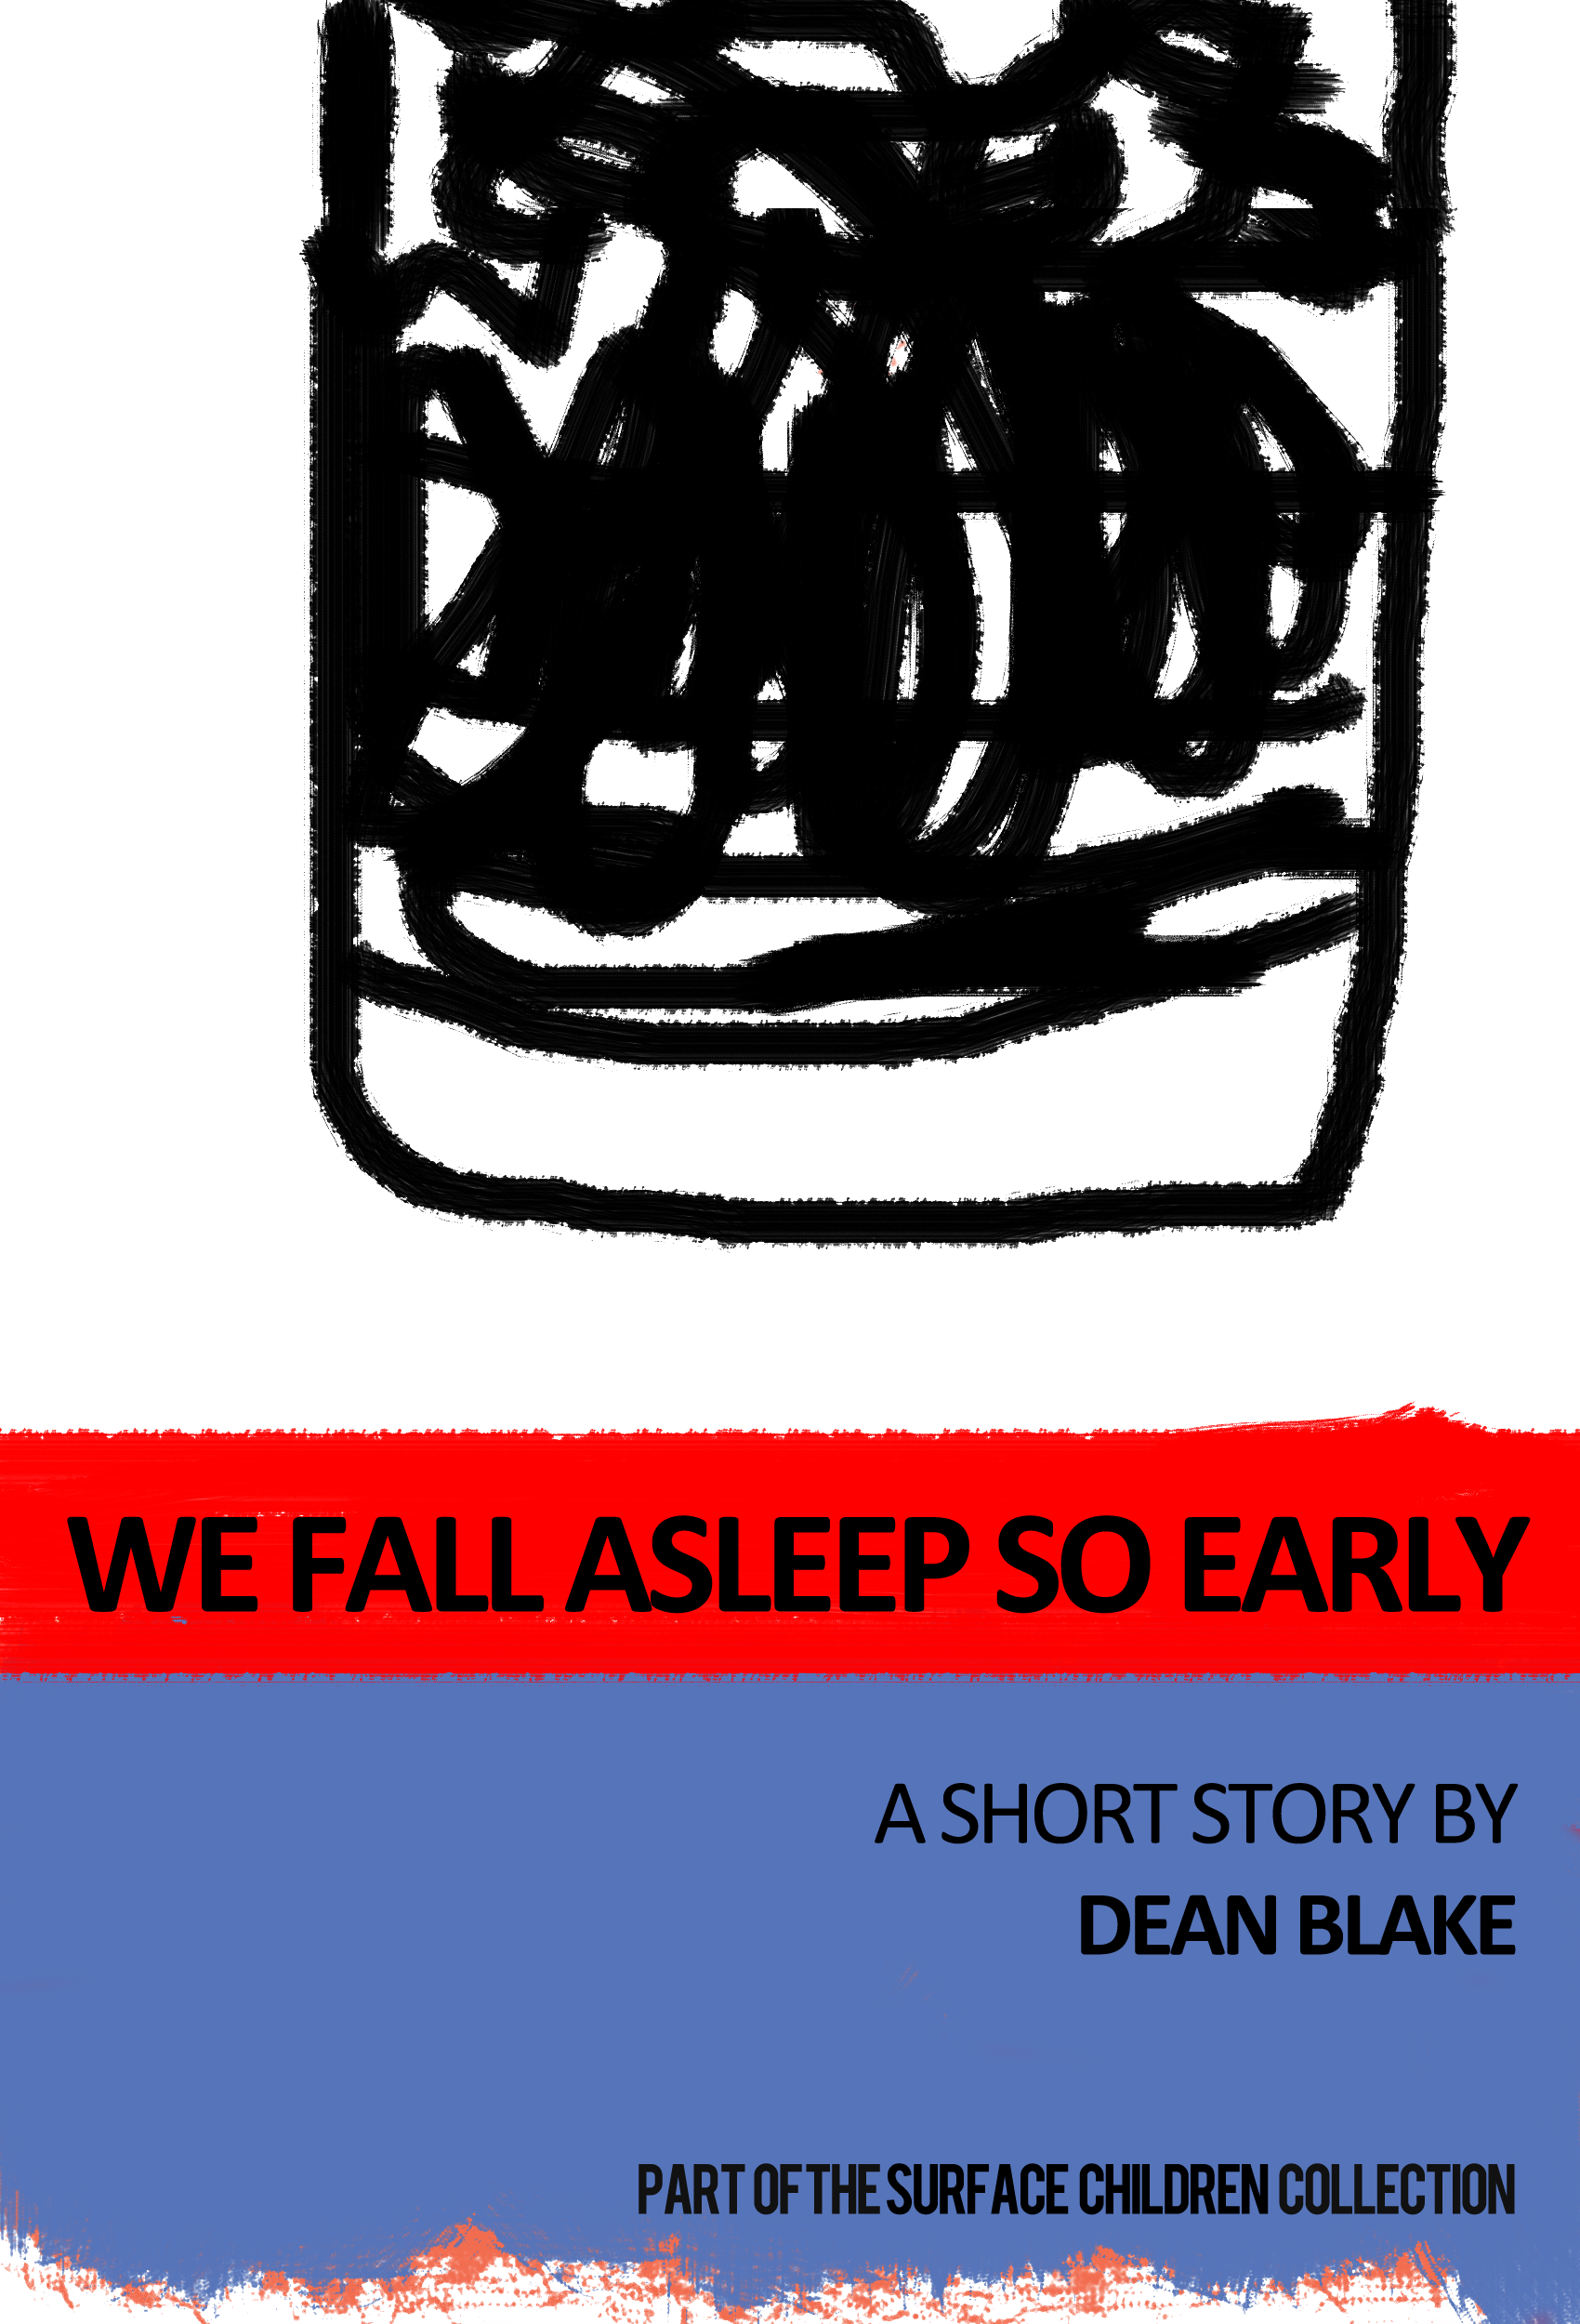 We Fall Asleep So Early - a short story by Dean Blake